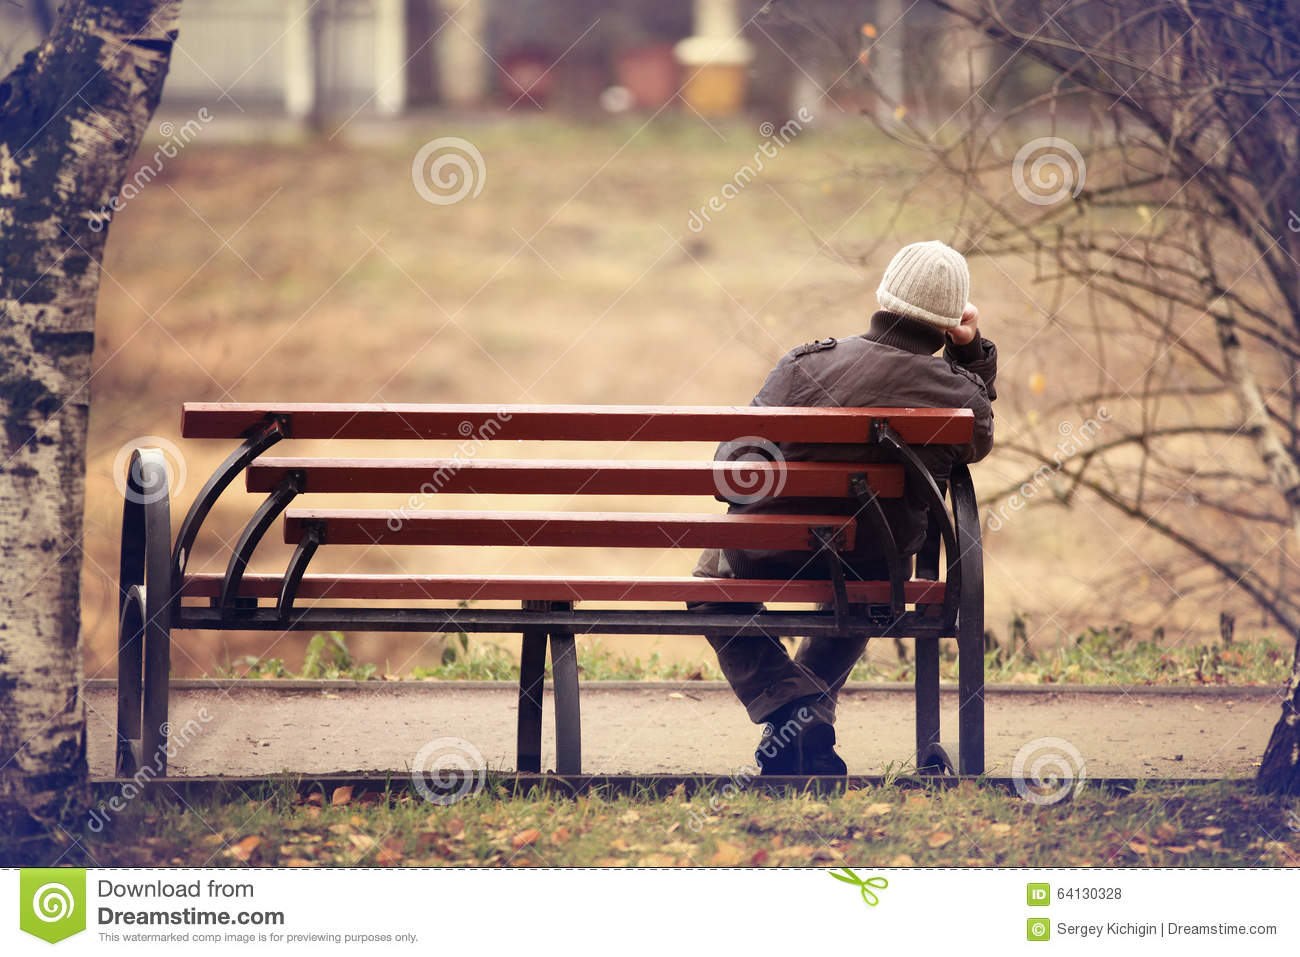 Lonely Man On The Bench Stock Photo - Image: 64130328